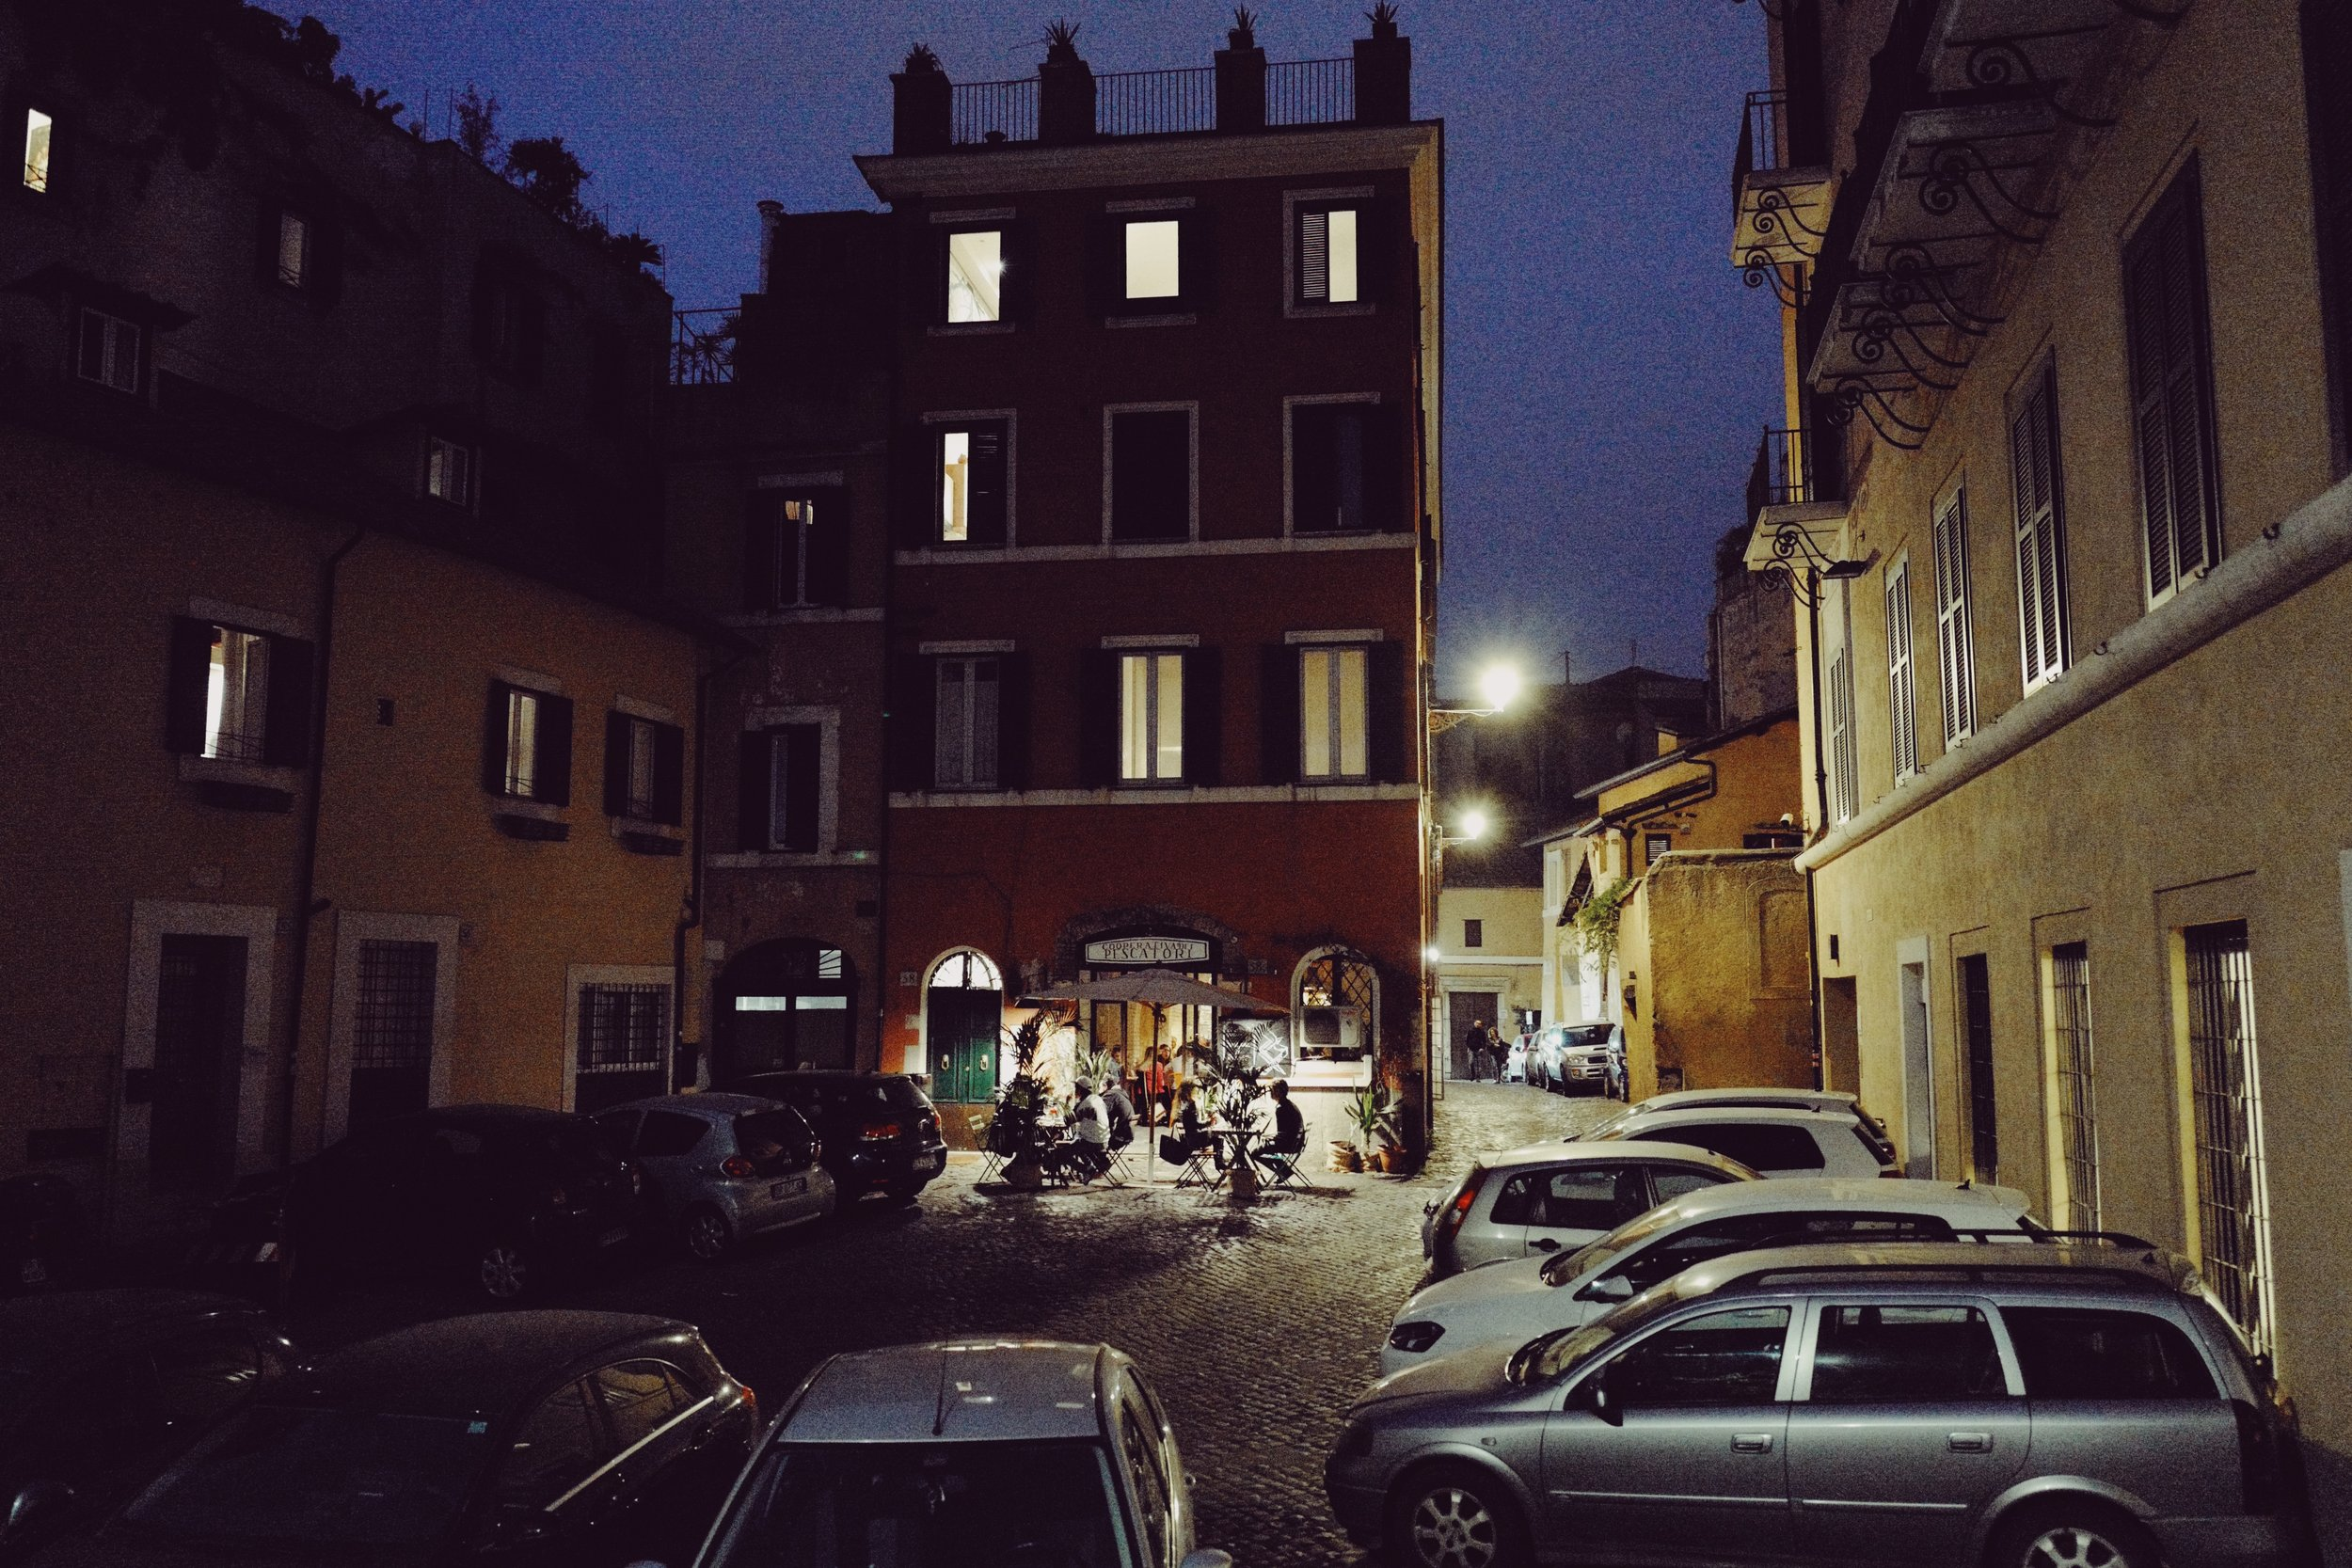 Trastevere: Late night restaurants still open with people eating outside!